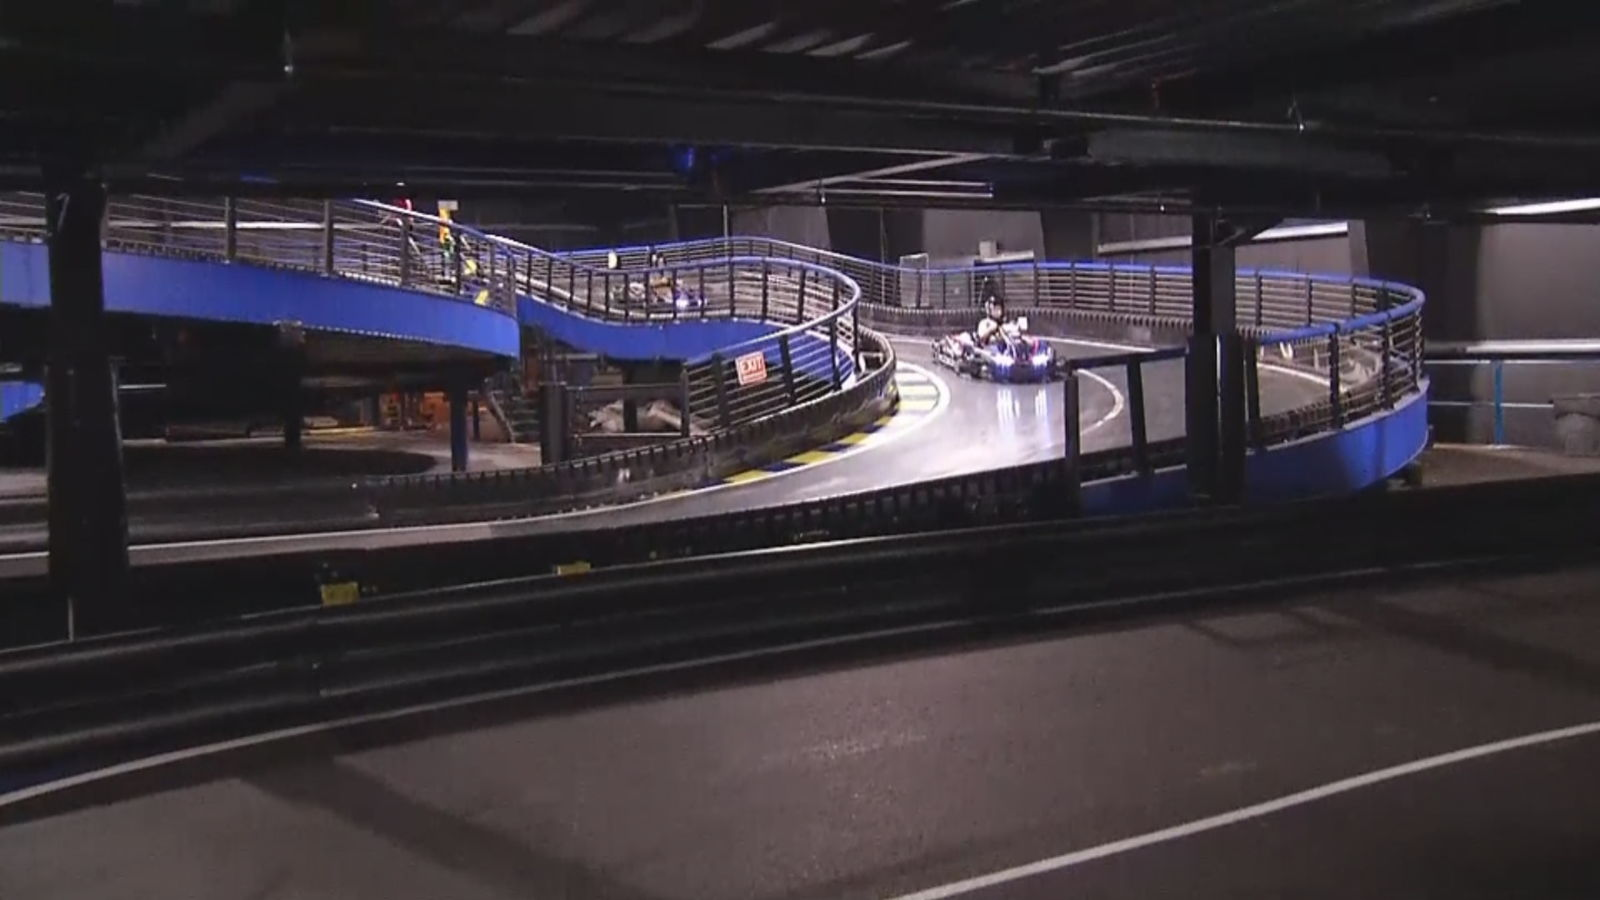 A new kart track opens in Wrentham, claiming to be the largest indoor multi-level kart track in the world. (WJAR)